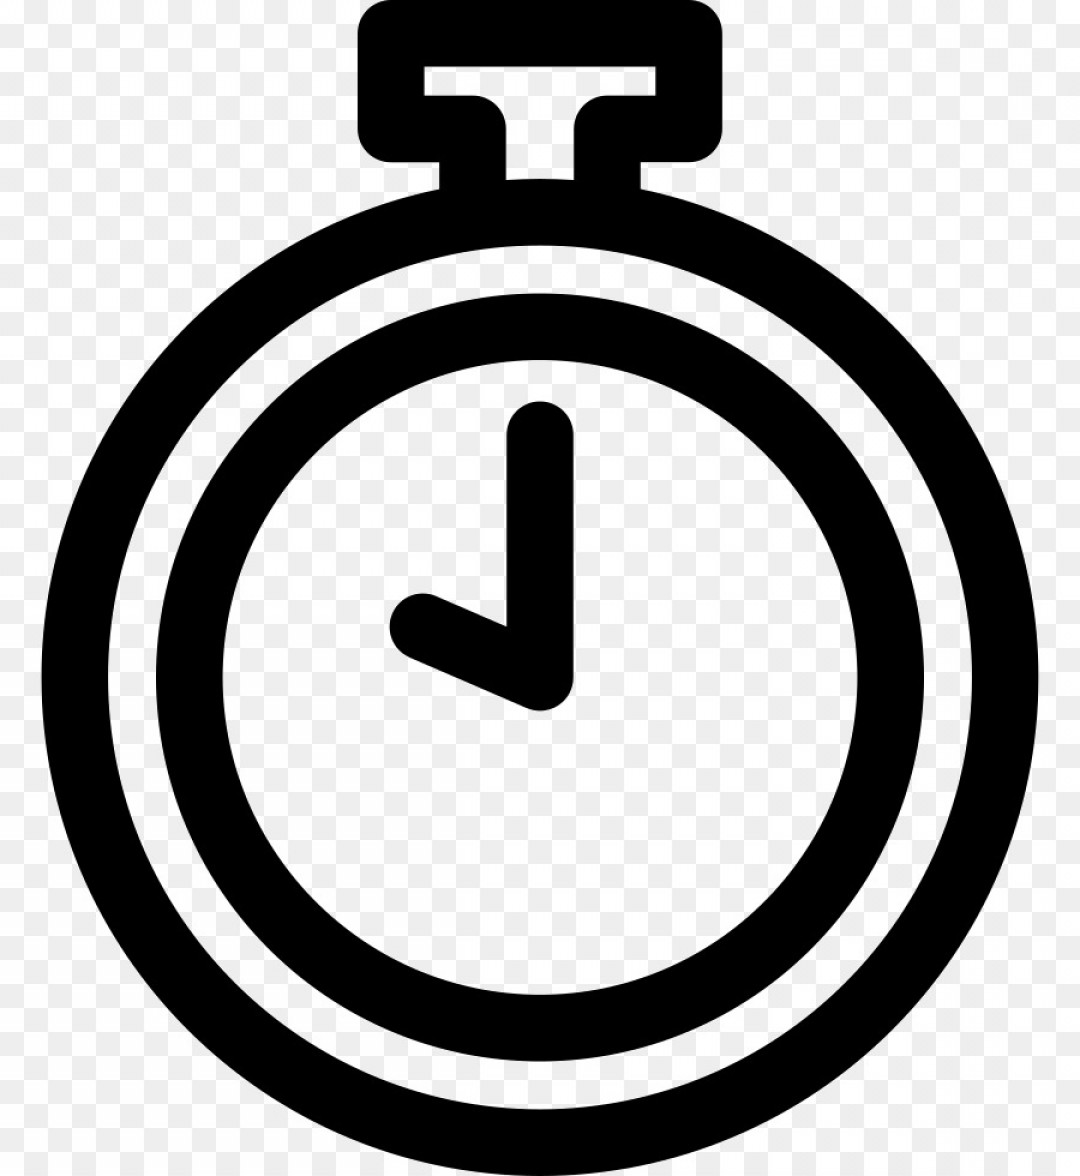 Png Pocket Watch Clock Vector Earring Pause Button.